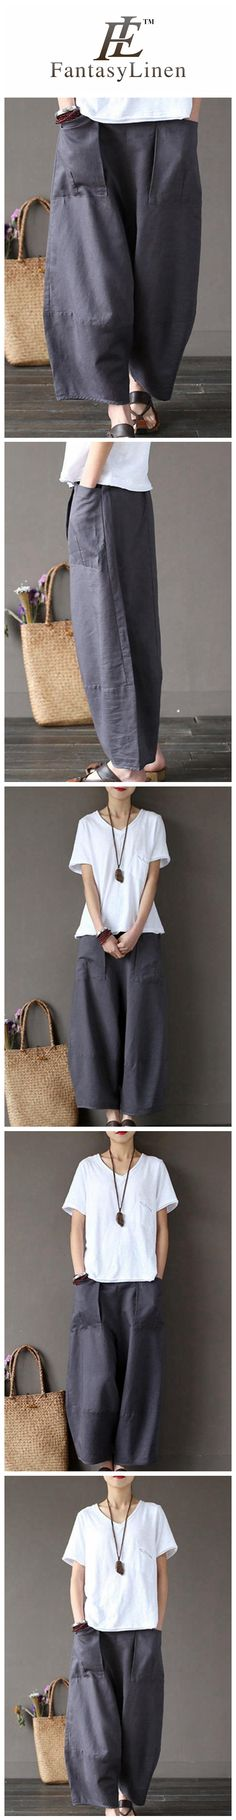 Gray Loose Cotton Linen Casual Ankle Length Pants Women Clothes P1203  P1203Gray